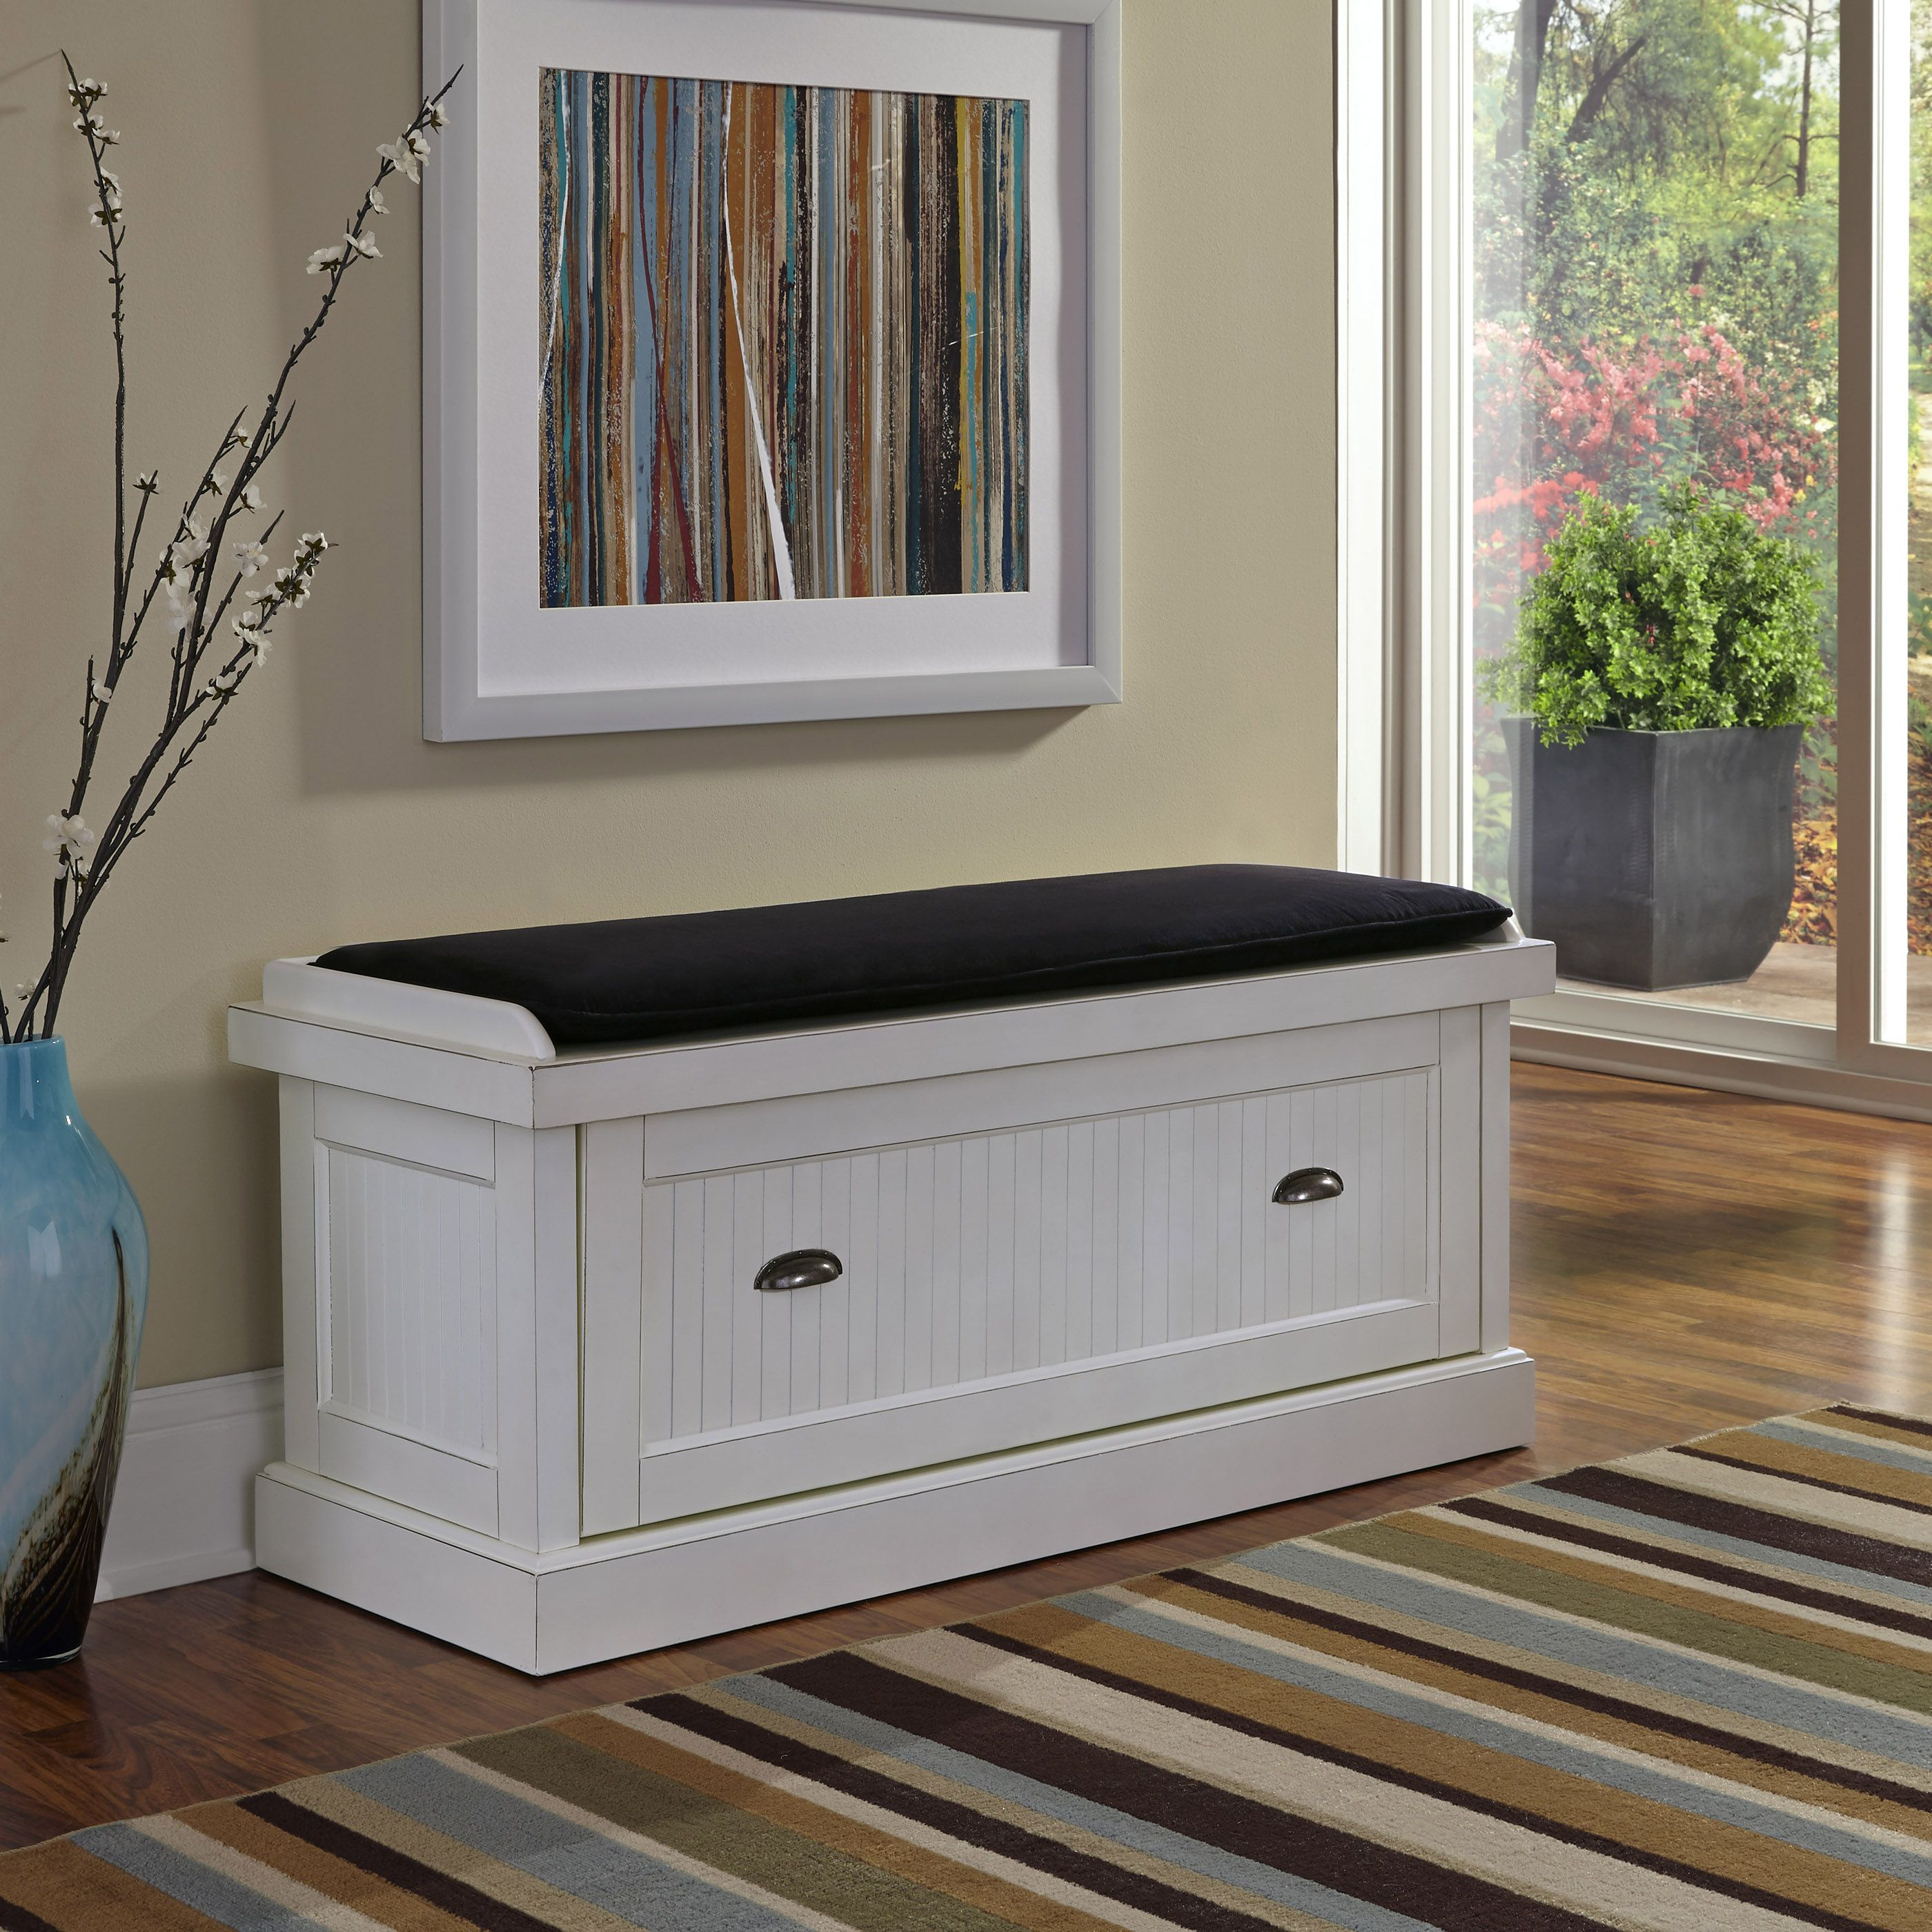 @Overstock - Nantucket Distressed Upholstered Bench - Give your home a cozy and inviting atmosphere with the Nantucket Upholstered Bench. Its sanded worn edges and distressed white finish provide the casual elegance that's great for any home d�cor style. http://www.overstock.com/Home-Garden/Nantucket-Distressed-Upholstered-Bench/8880285/product.html?CID=214117 $224.99